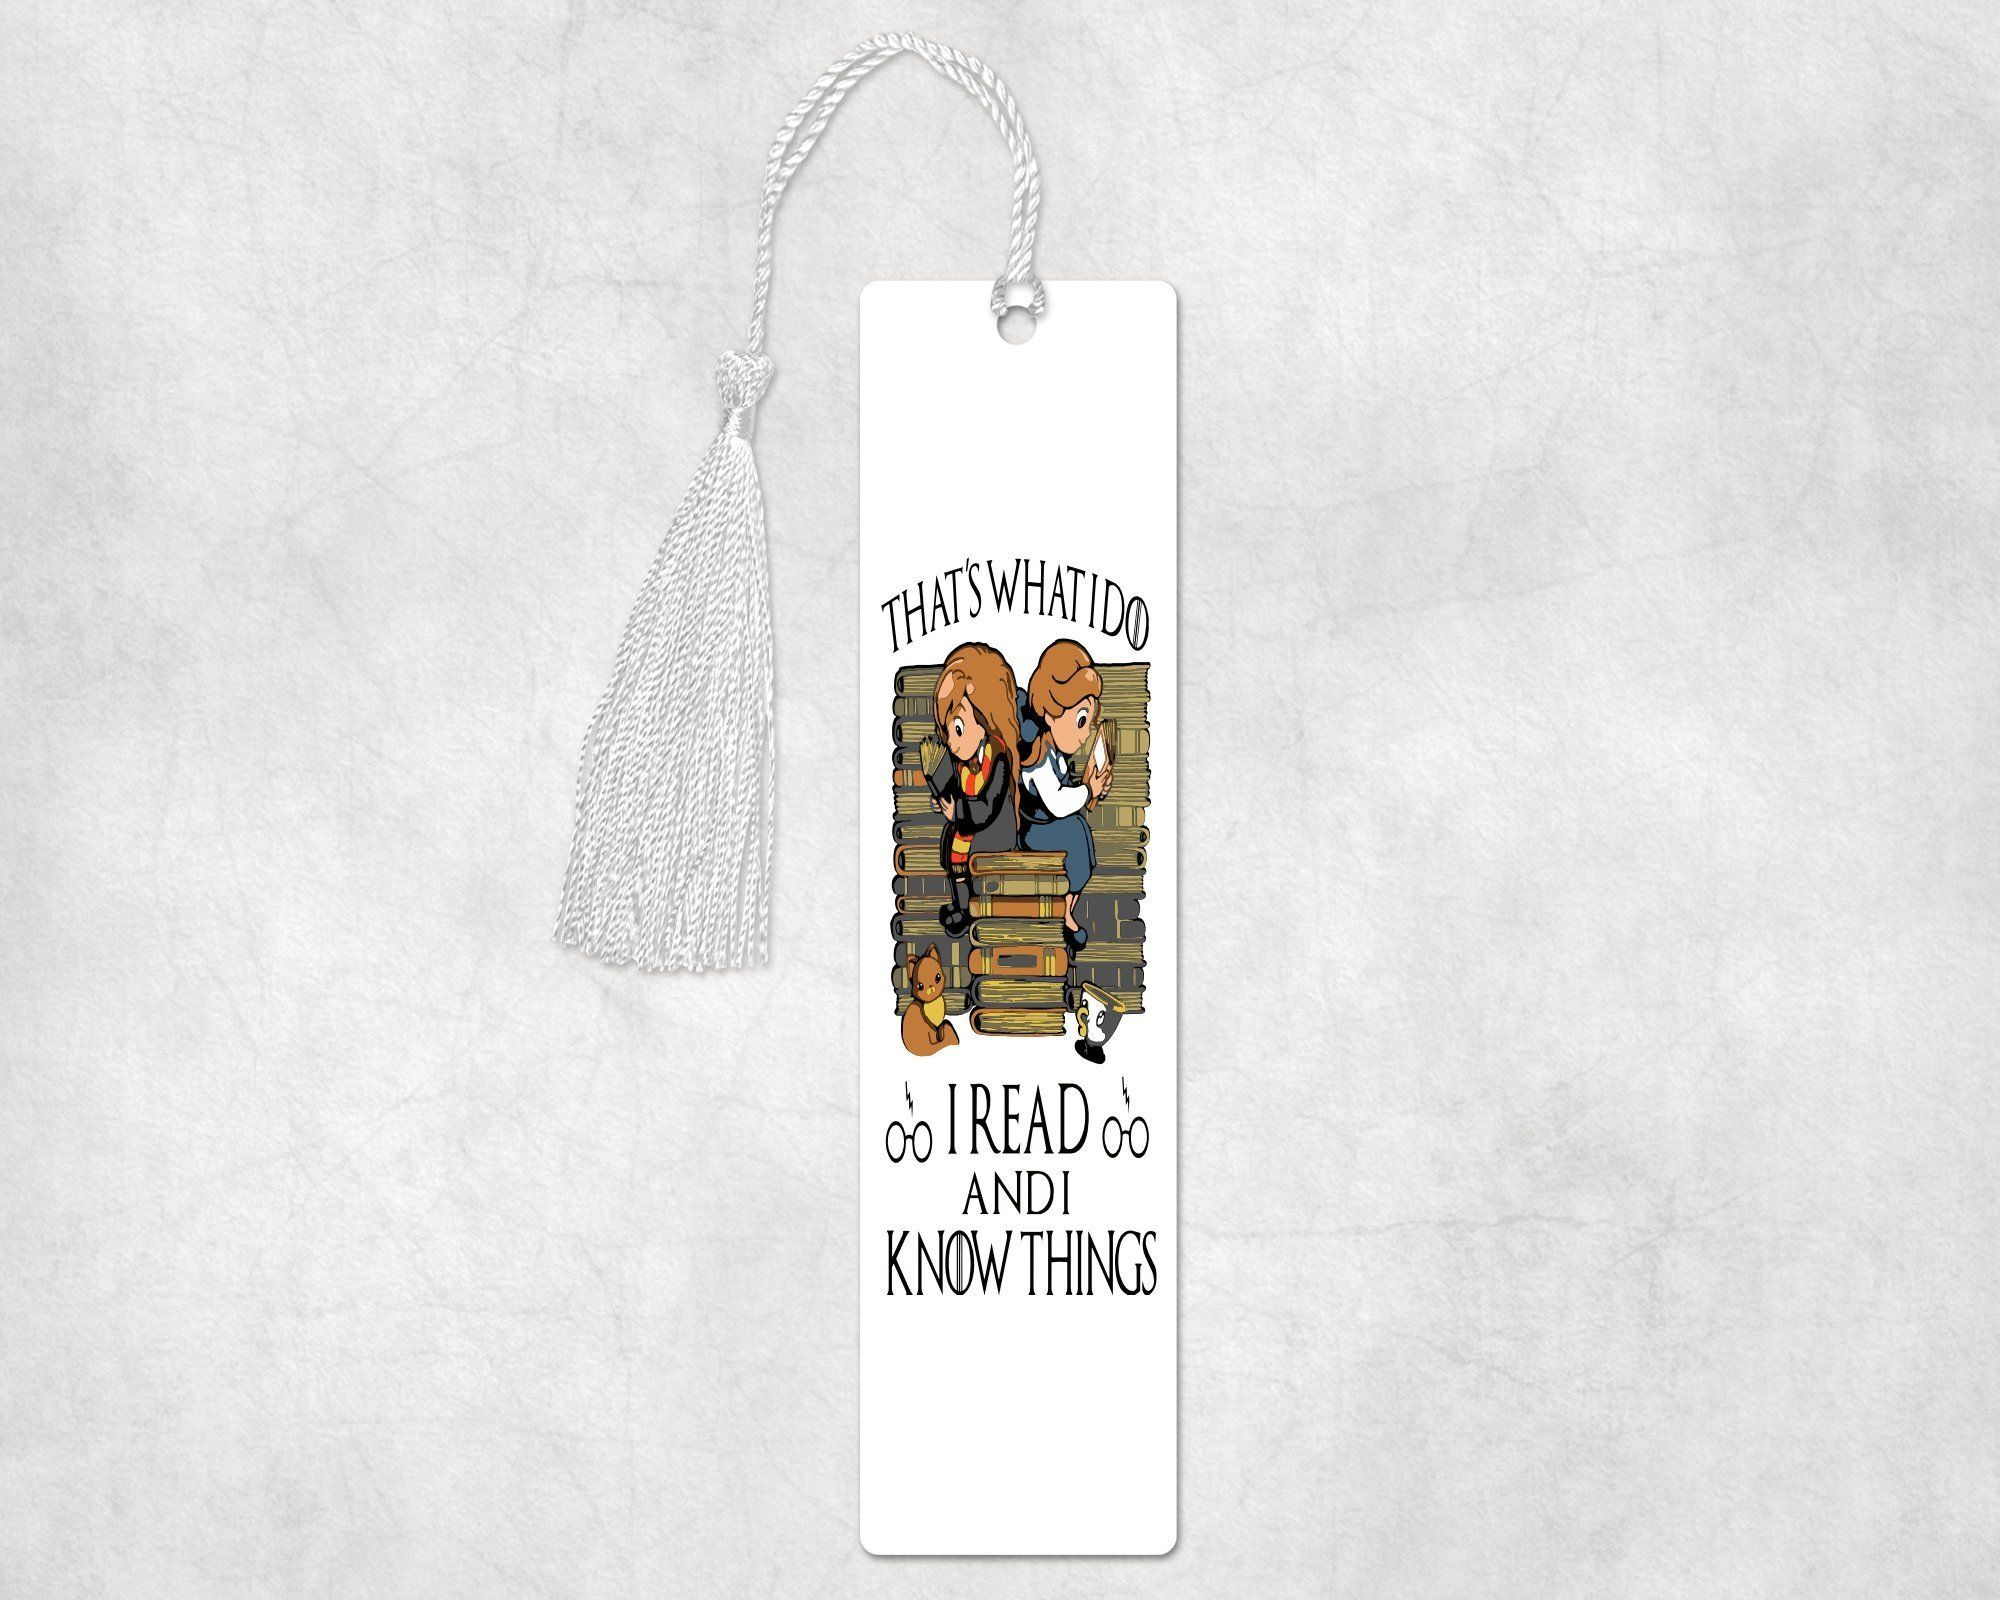 I read and I know things aluminum bookmark, 2x8 inches  #design #handmade #gift #birthday #giftideas #designtimegnc #art #gifts #gifting #giftguide